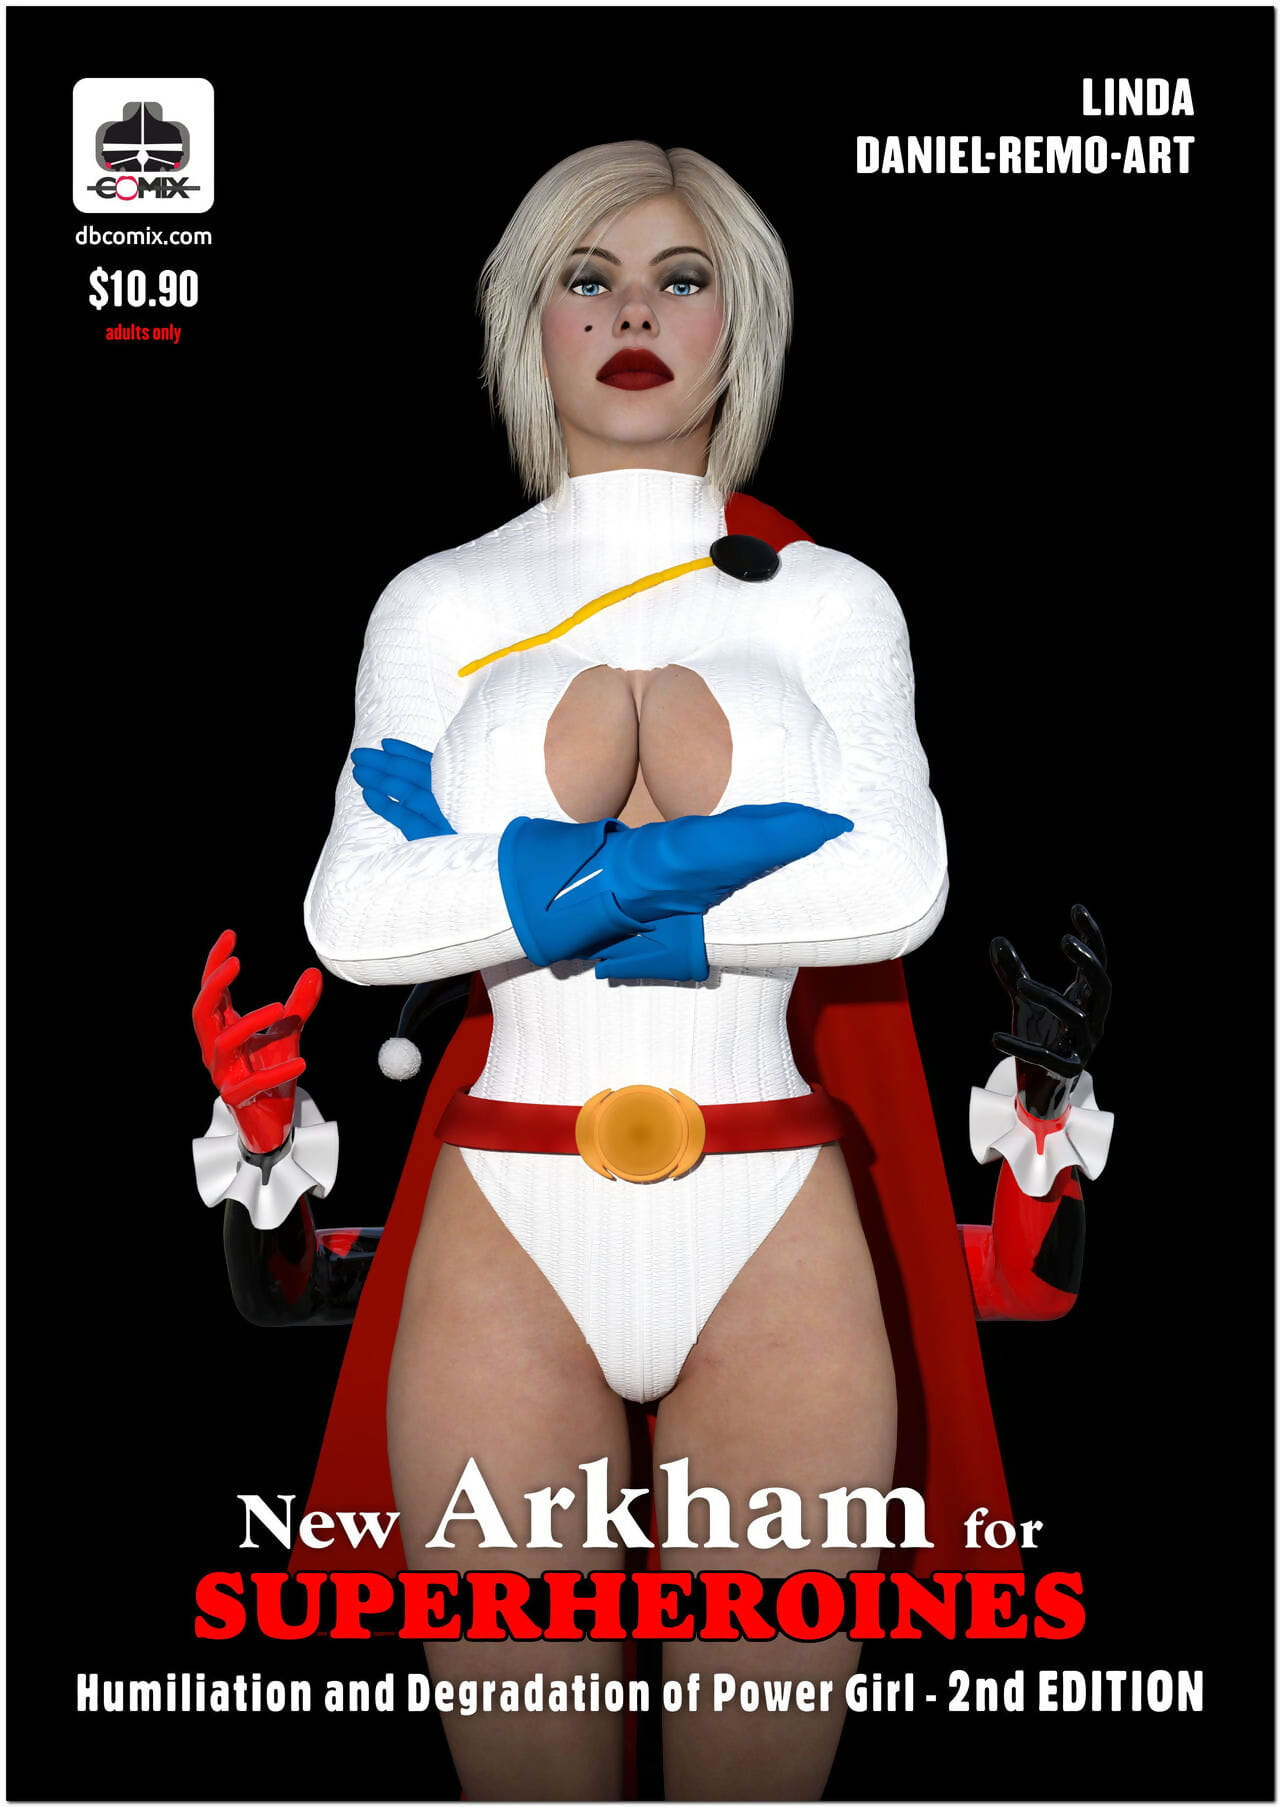 DBComix Way-out Arkham Be required be advisable for Superheroines 1 2nd Print run - Disrepute plus Humiliation be advisable for Gifts Catholic